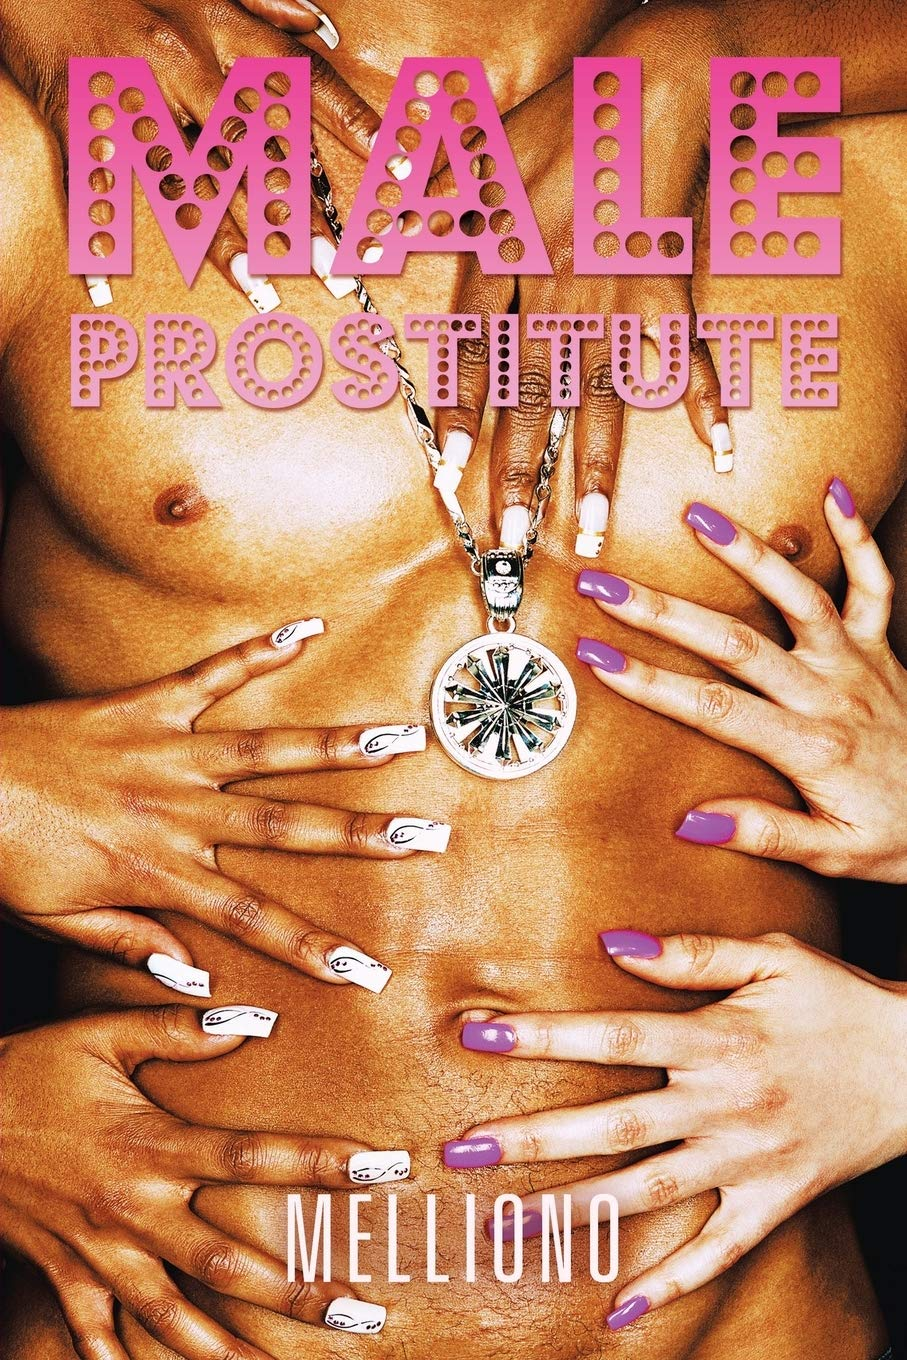 Male prostitute want to become What drives